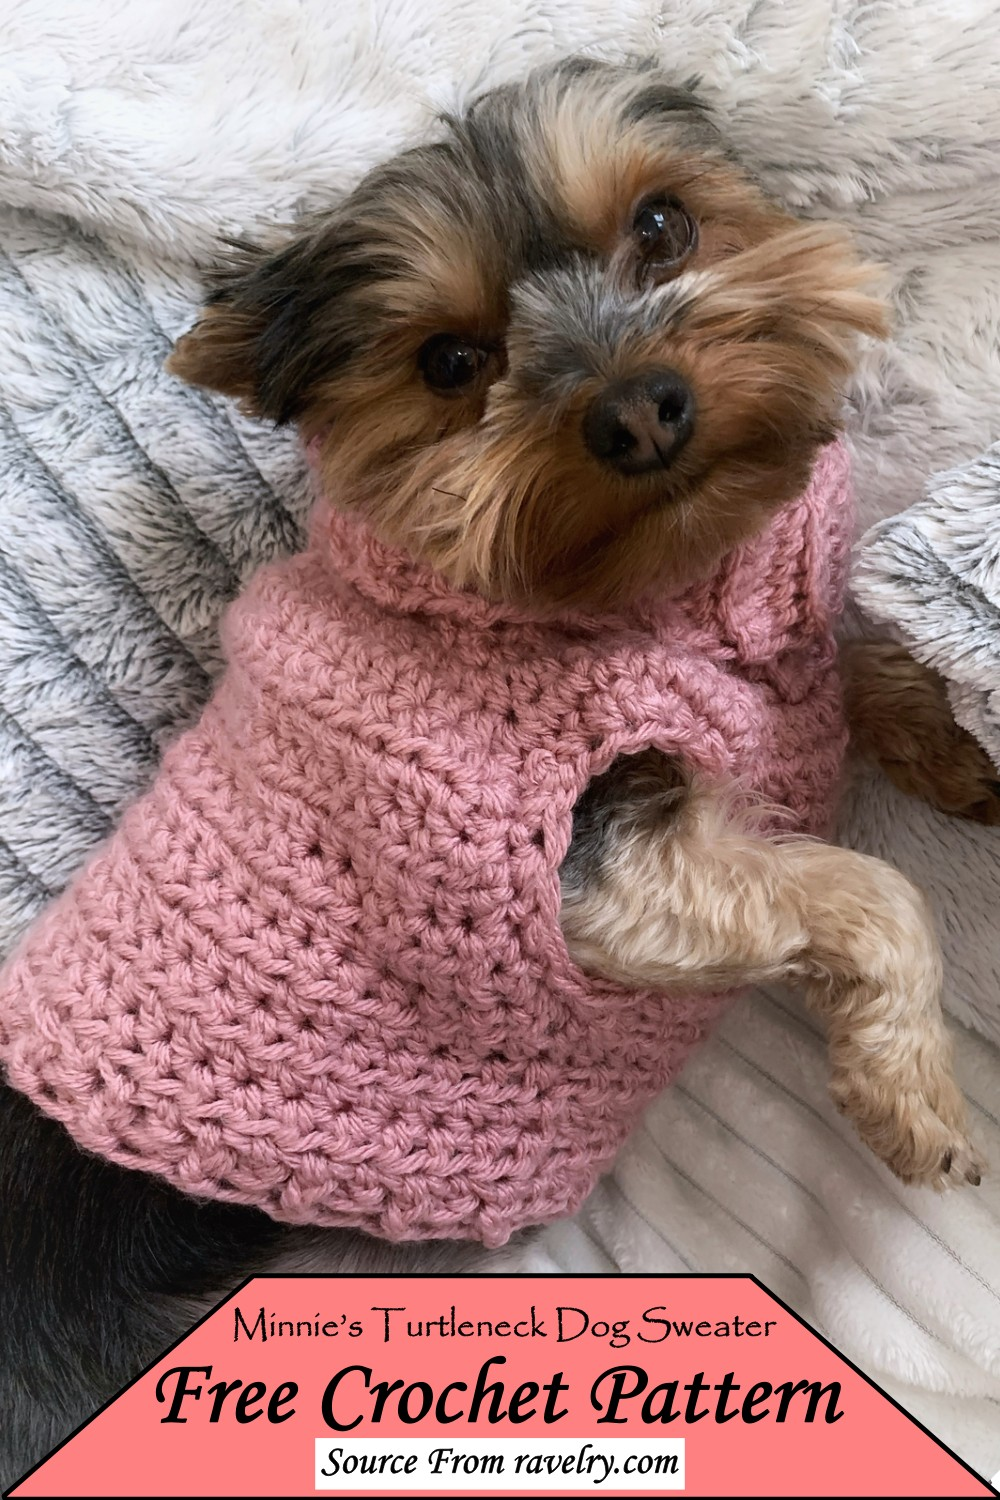 Minnie's Turtleneck Sweater Pattern for your puppy